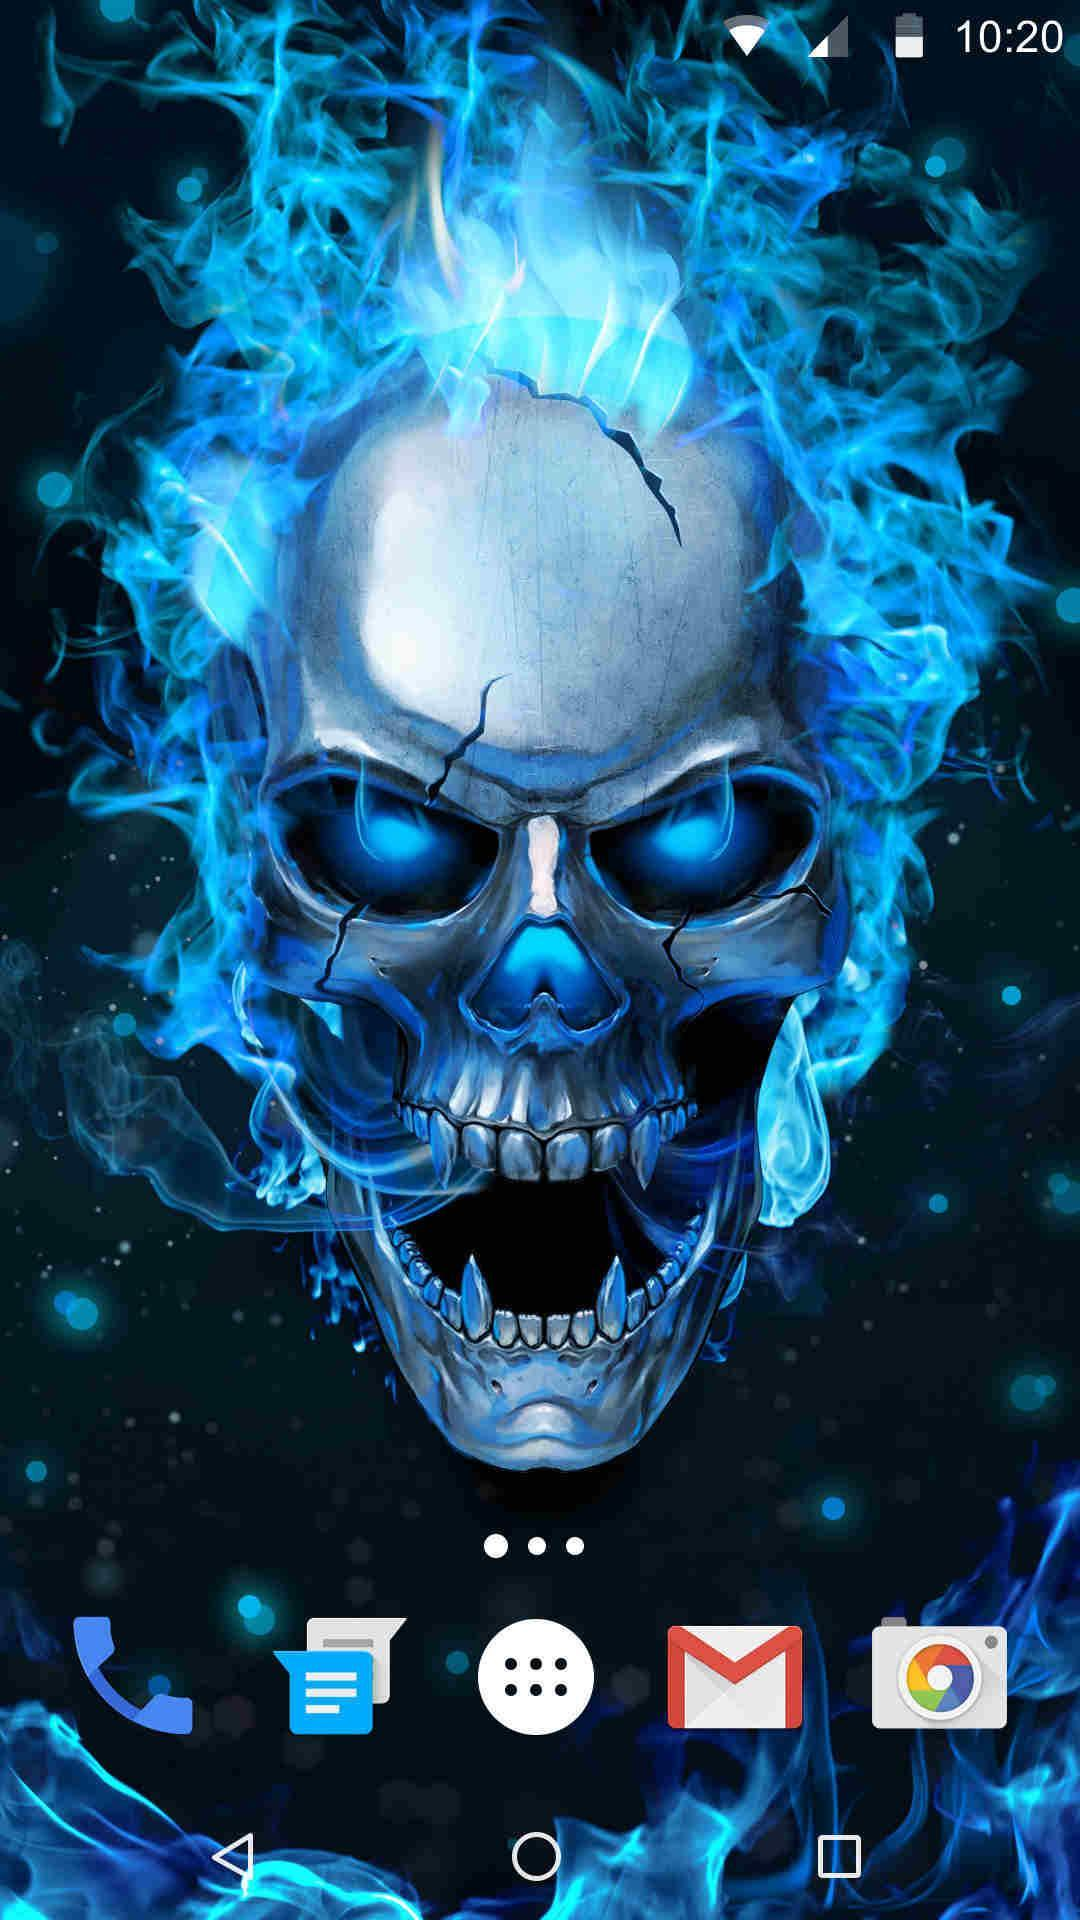 Blue Flaming Skull Live Wallpaper 2019 For Android Apk Download